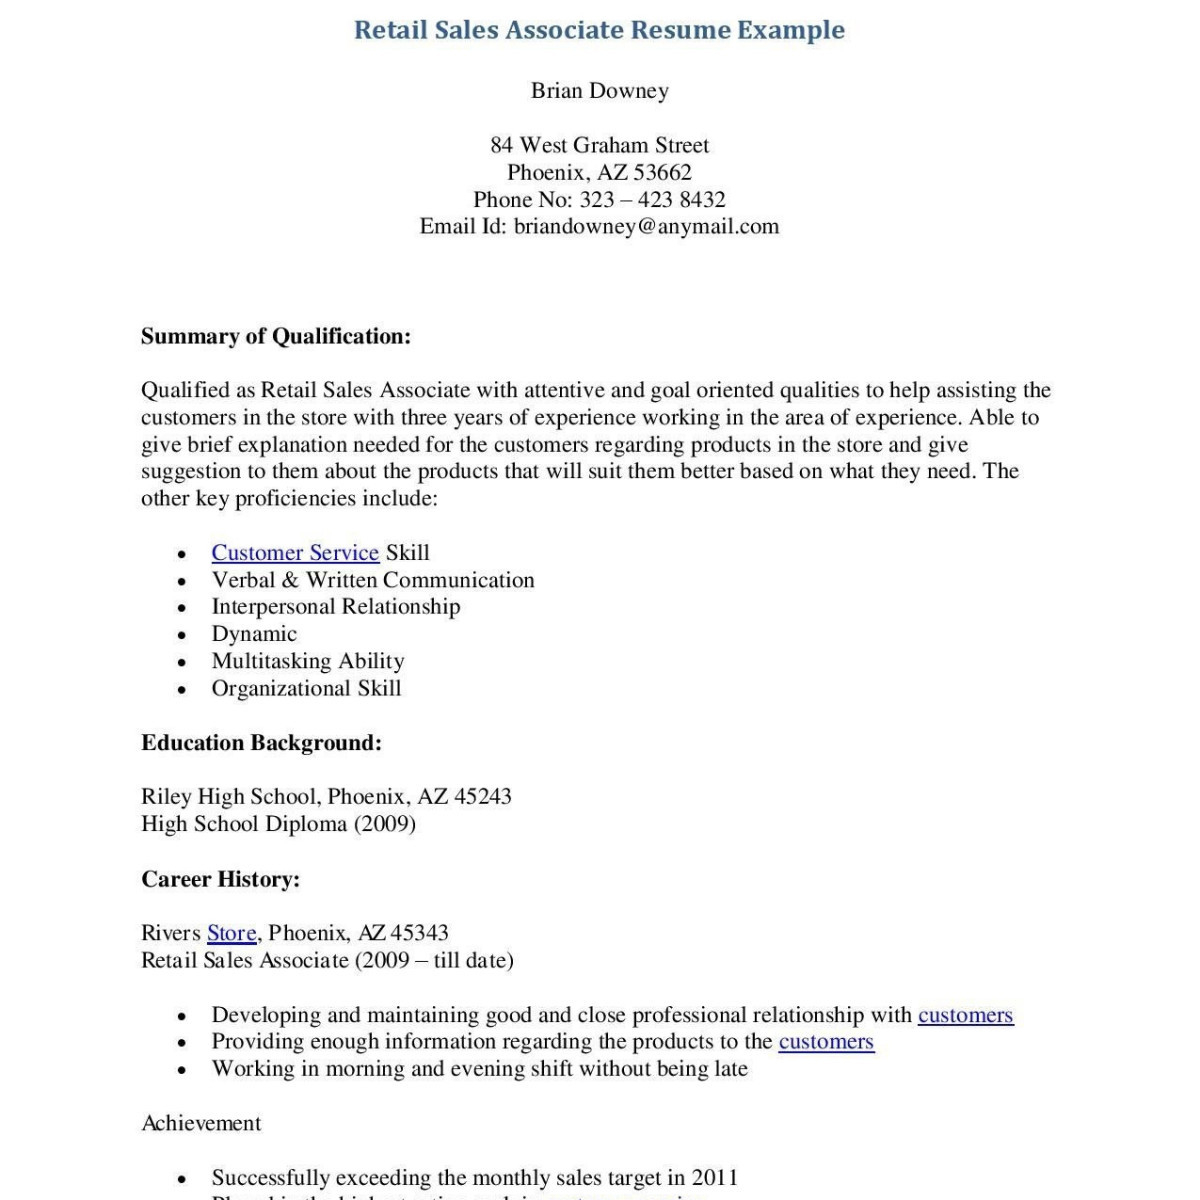 retail sales resume template Collection-Resume for Retail Store Pretty Resume for Retail Store Fresh Retail Resume 0d Archives 15-d